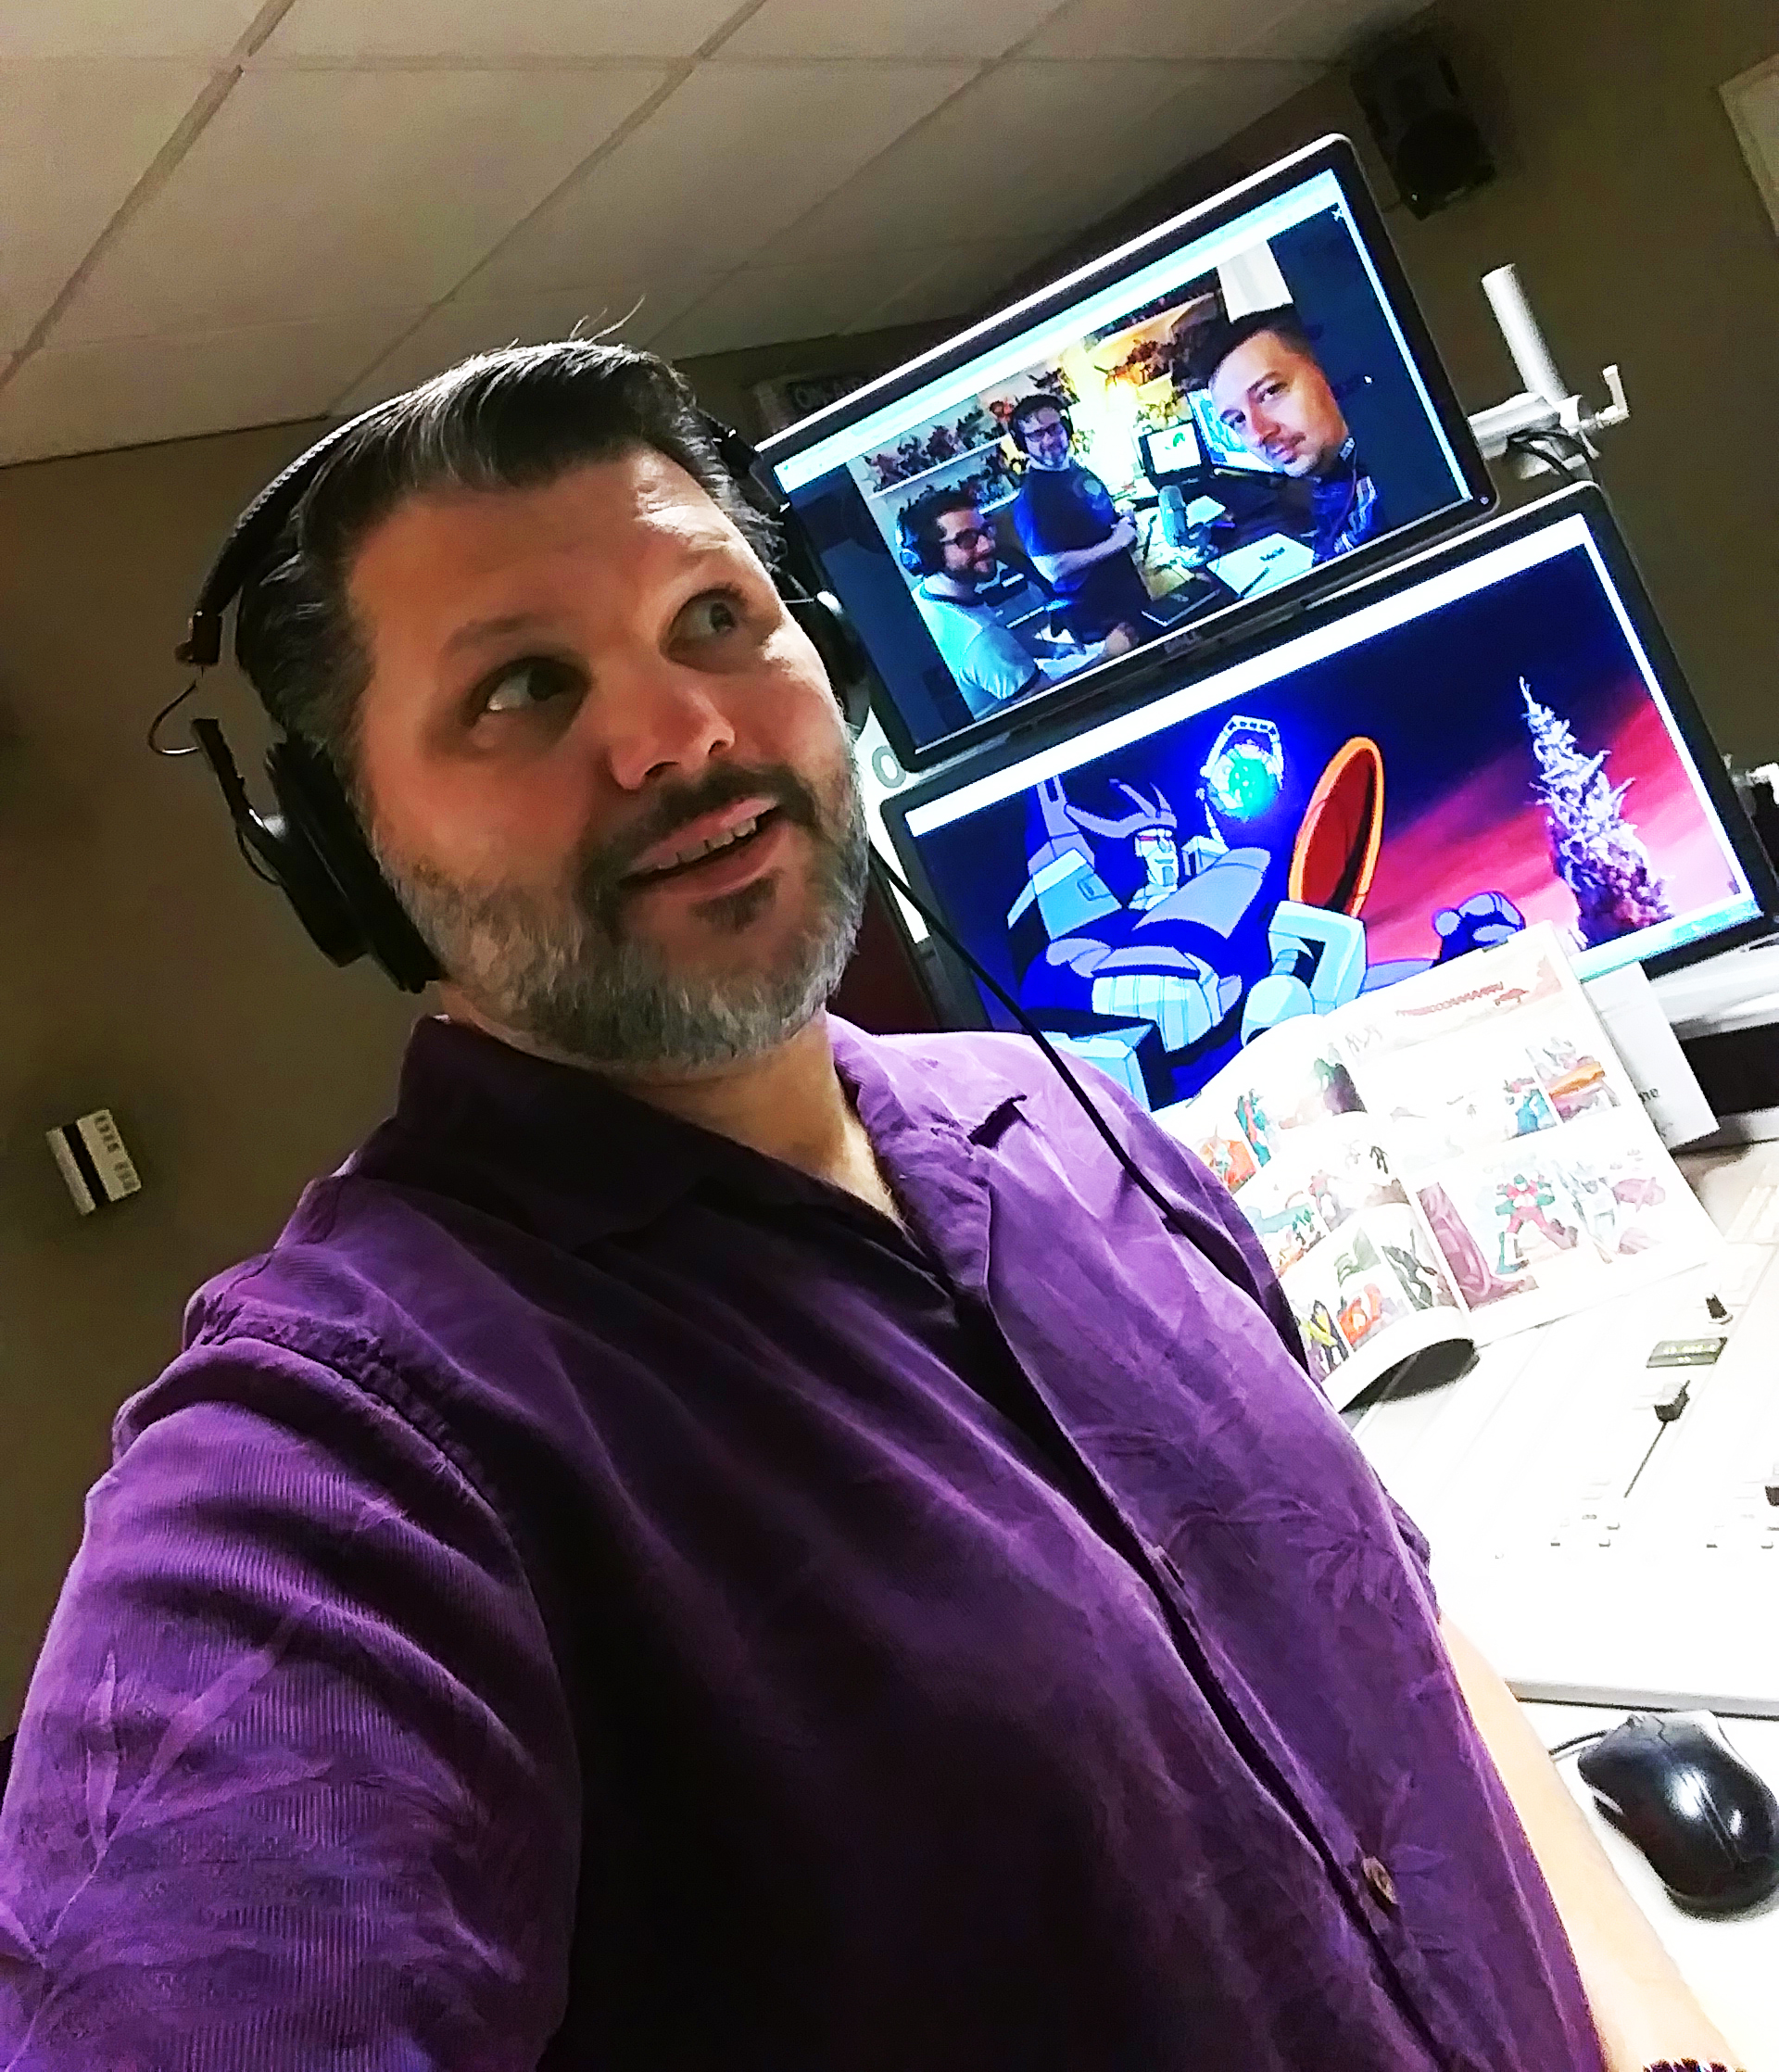 Special thanks to Mike Seibert of  Mike Seibert Radio  for joining us on this episode. Transformers: The Movie is his favorite movie and he had lots of great content to contribute to this epic minute.Mike interviewed us on episode 150 of his show released on April 10th.Go check it out!    For more great TF content, check out Mike on this live radio special on KGRG-FM:    https://soundcloud.com/mikeseibertradio/the-mmad-transformers-the-movie-30th-anniversary-celebration    Need more sweet TF content? Well how about this interview with The Cybertronic Spree, a TFTM-inspired band:  http://www.kgrg.com/episode/cybertronic-warrior-mike-interviews-the-cybertronic-spree/    https://soundcloud.com/mikeseibertradio/episode-153-rampage-pacific-rim-uprising-with-killing-spree